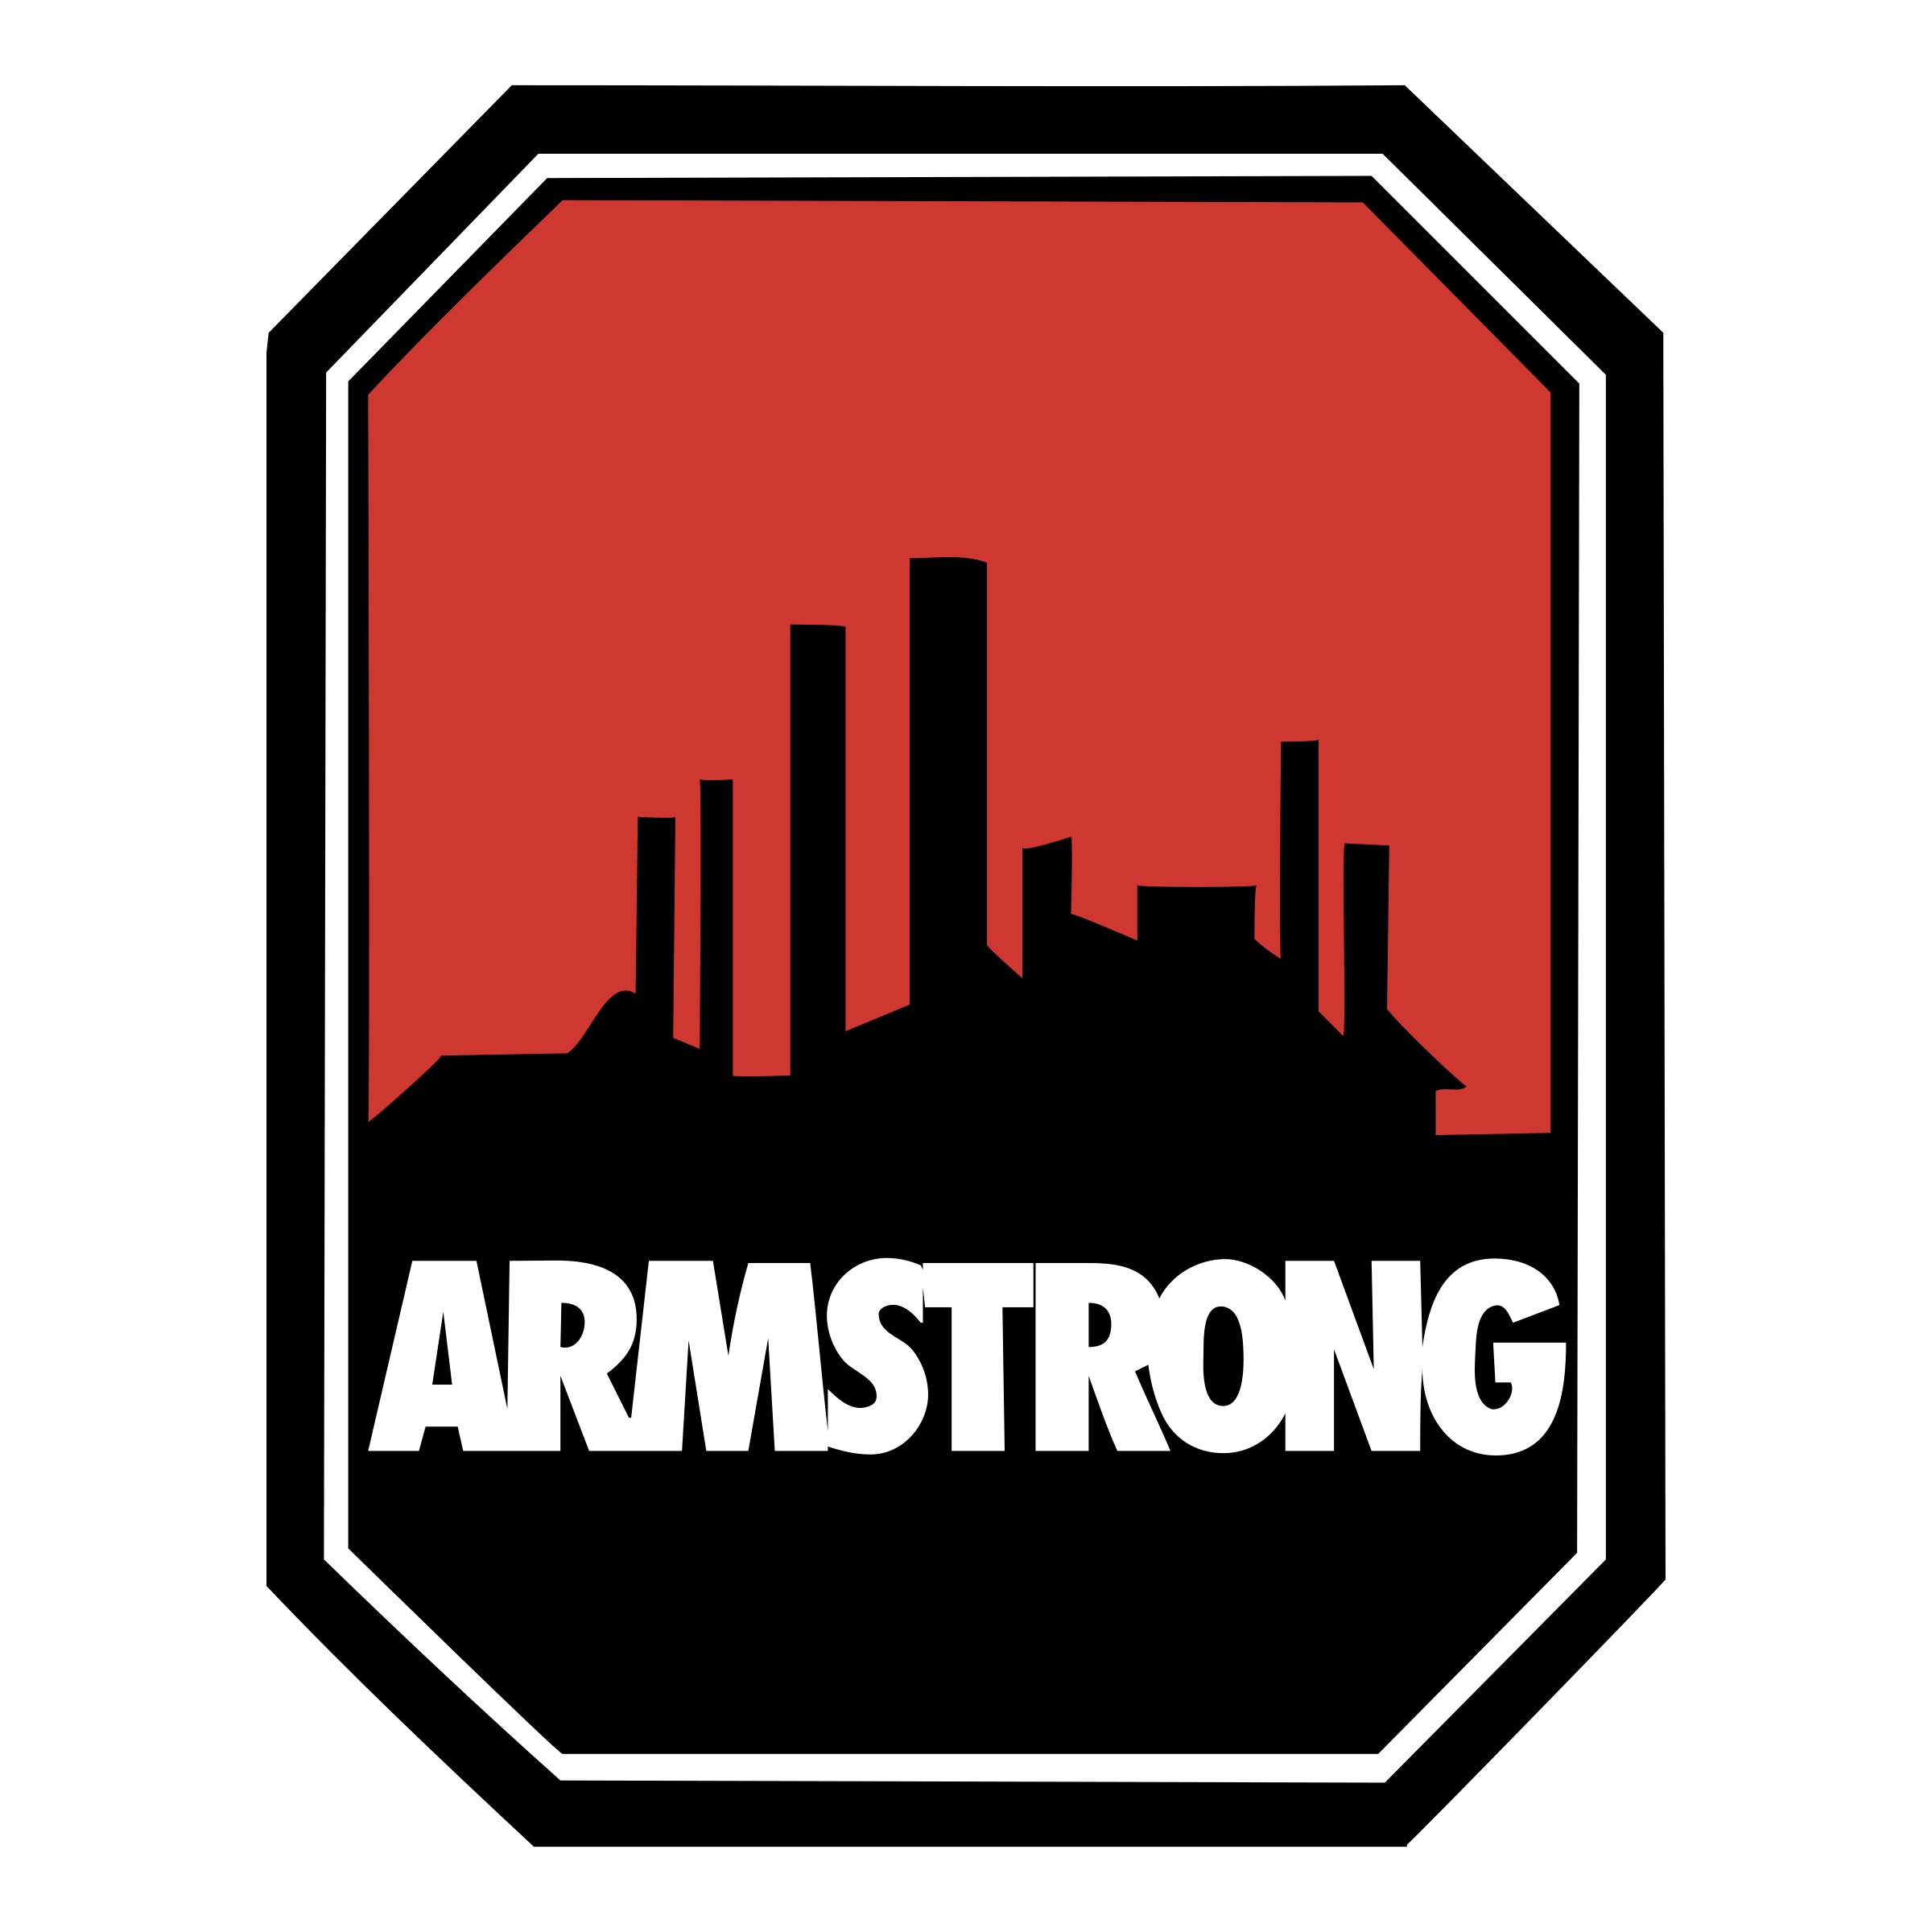 armstrong-pumps-logo-png-transparent.png